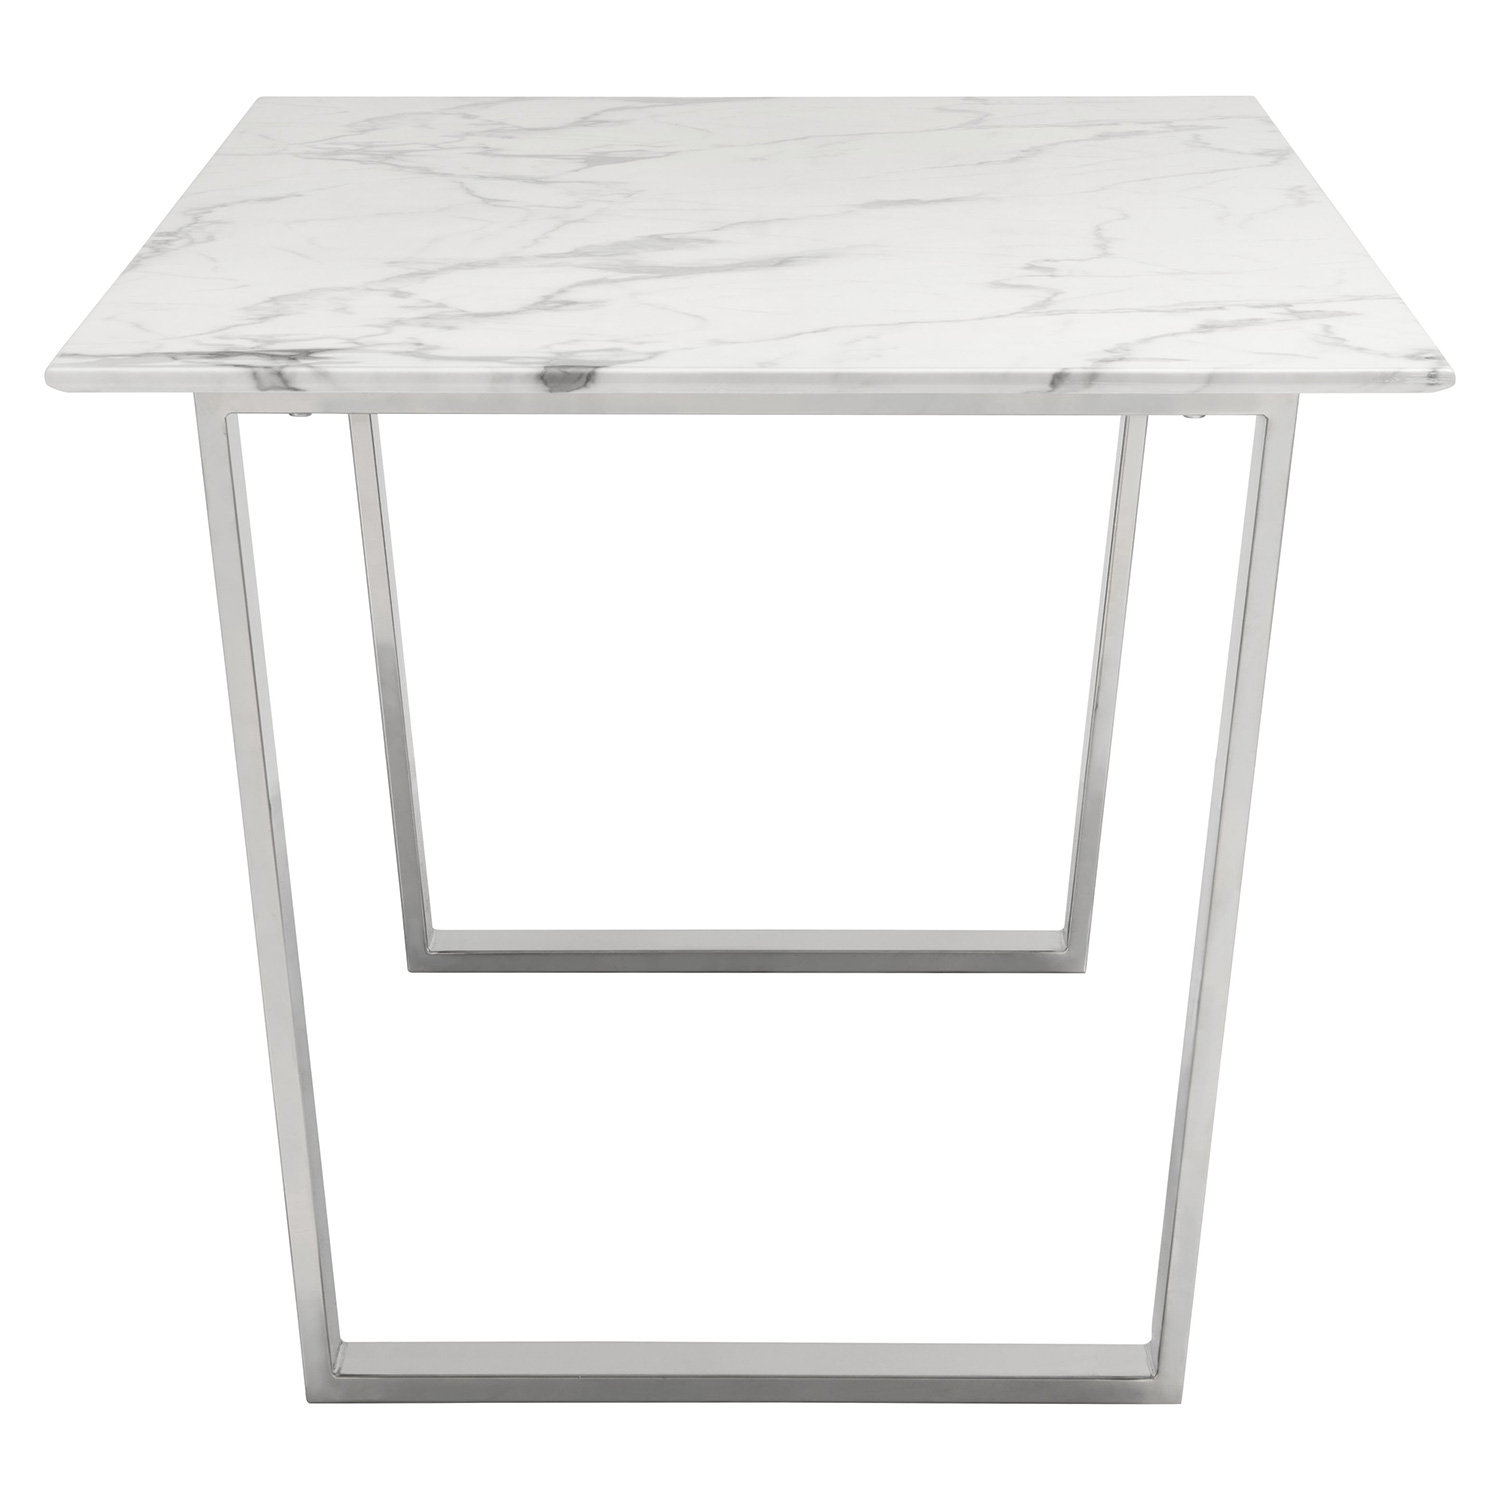 "Zuo Modern Atlas 70"" Dining Table w Faux Marble Top on"